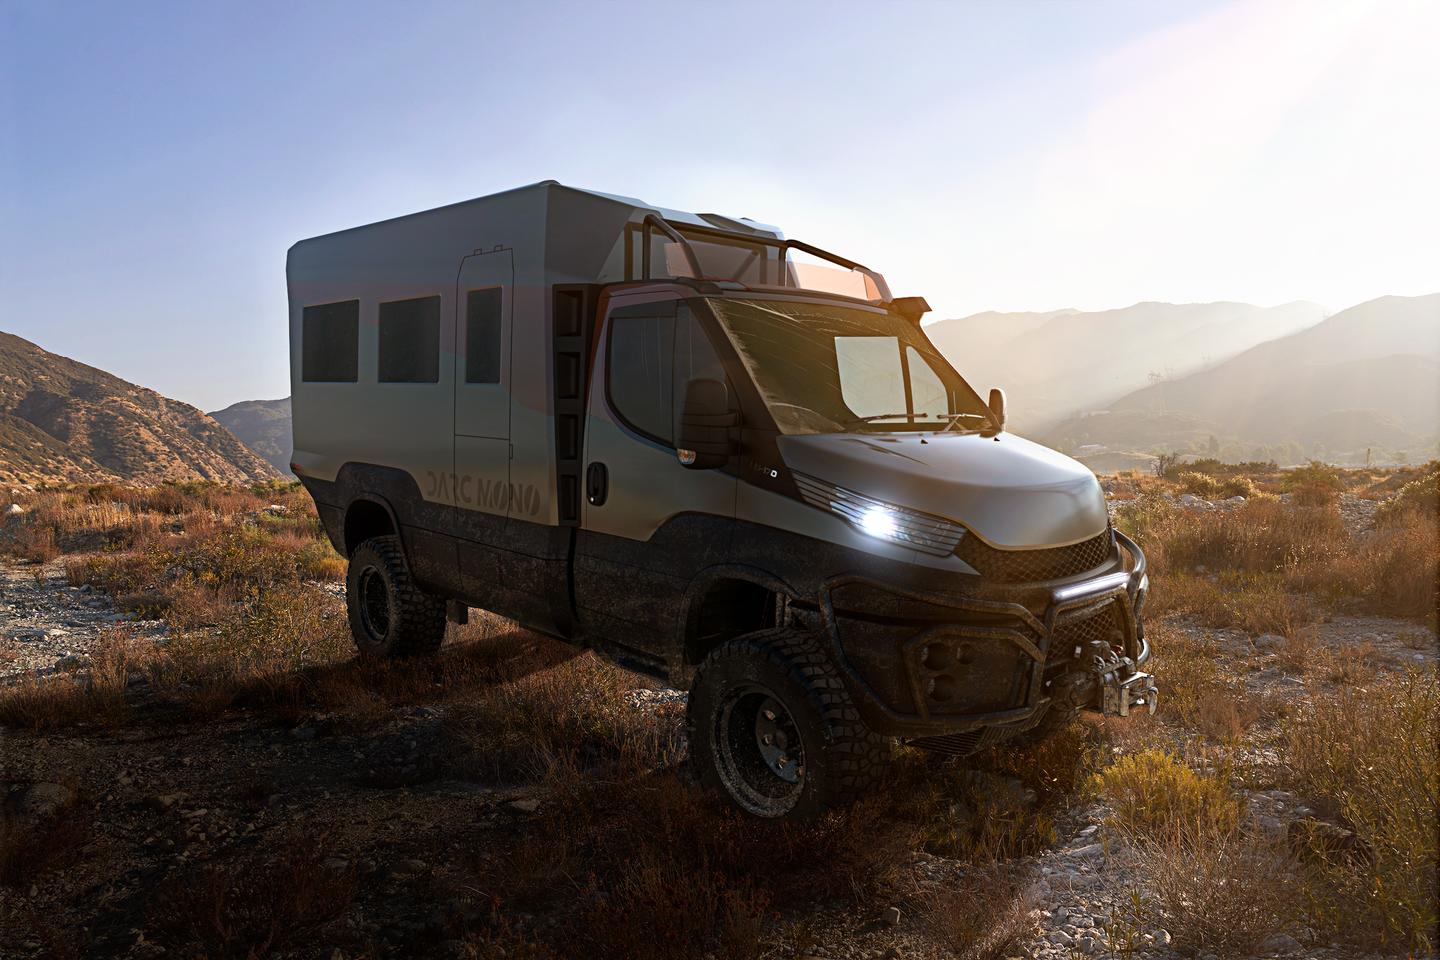 Darc beefs up the Iveco Daily 4x4 and drops on its custom motorhome module